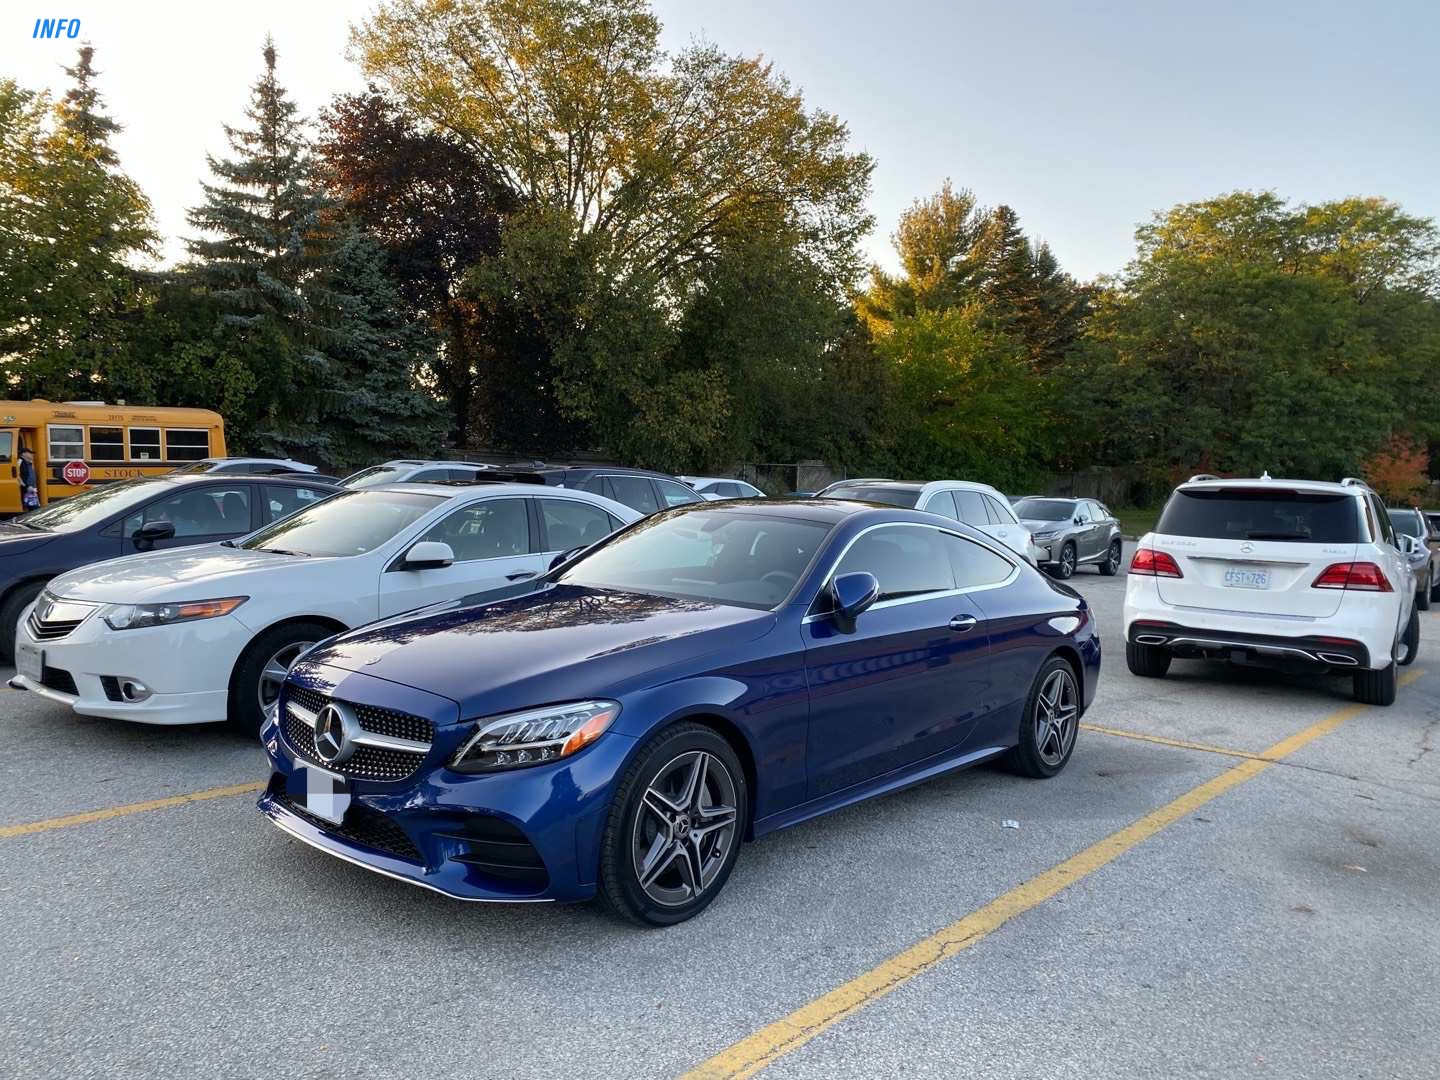 2020 Mercedes-Benz C-Class 300 coupe - INFOCAR - Toronto's Most Comprehensive New and Used Auto Trading Platform